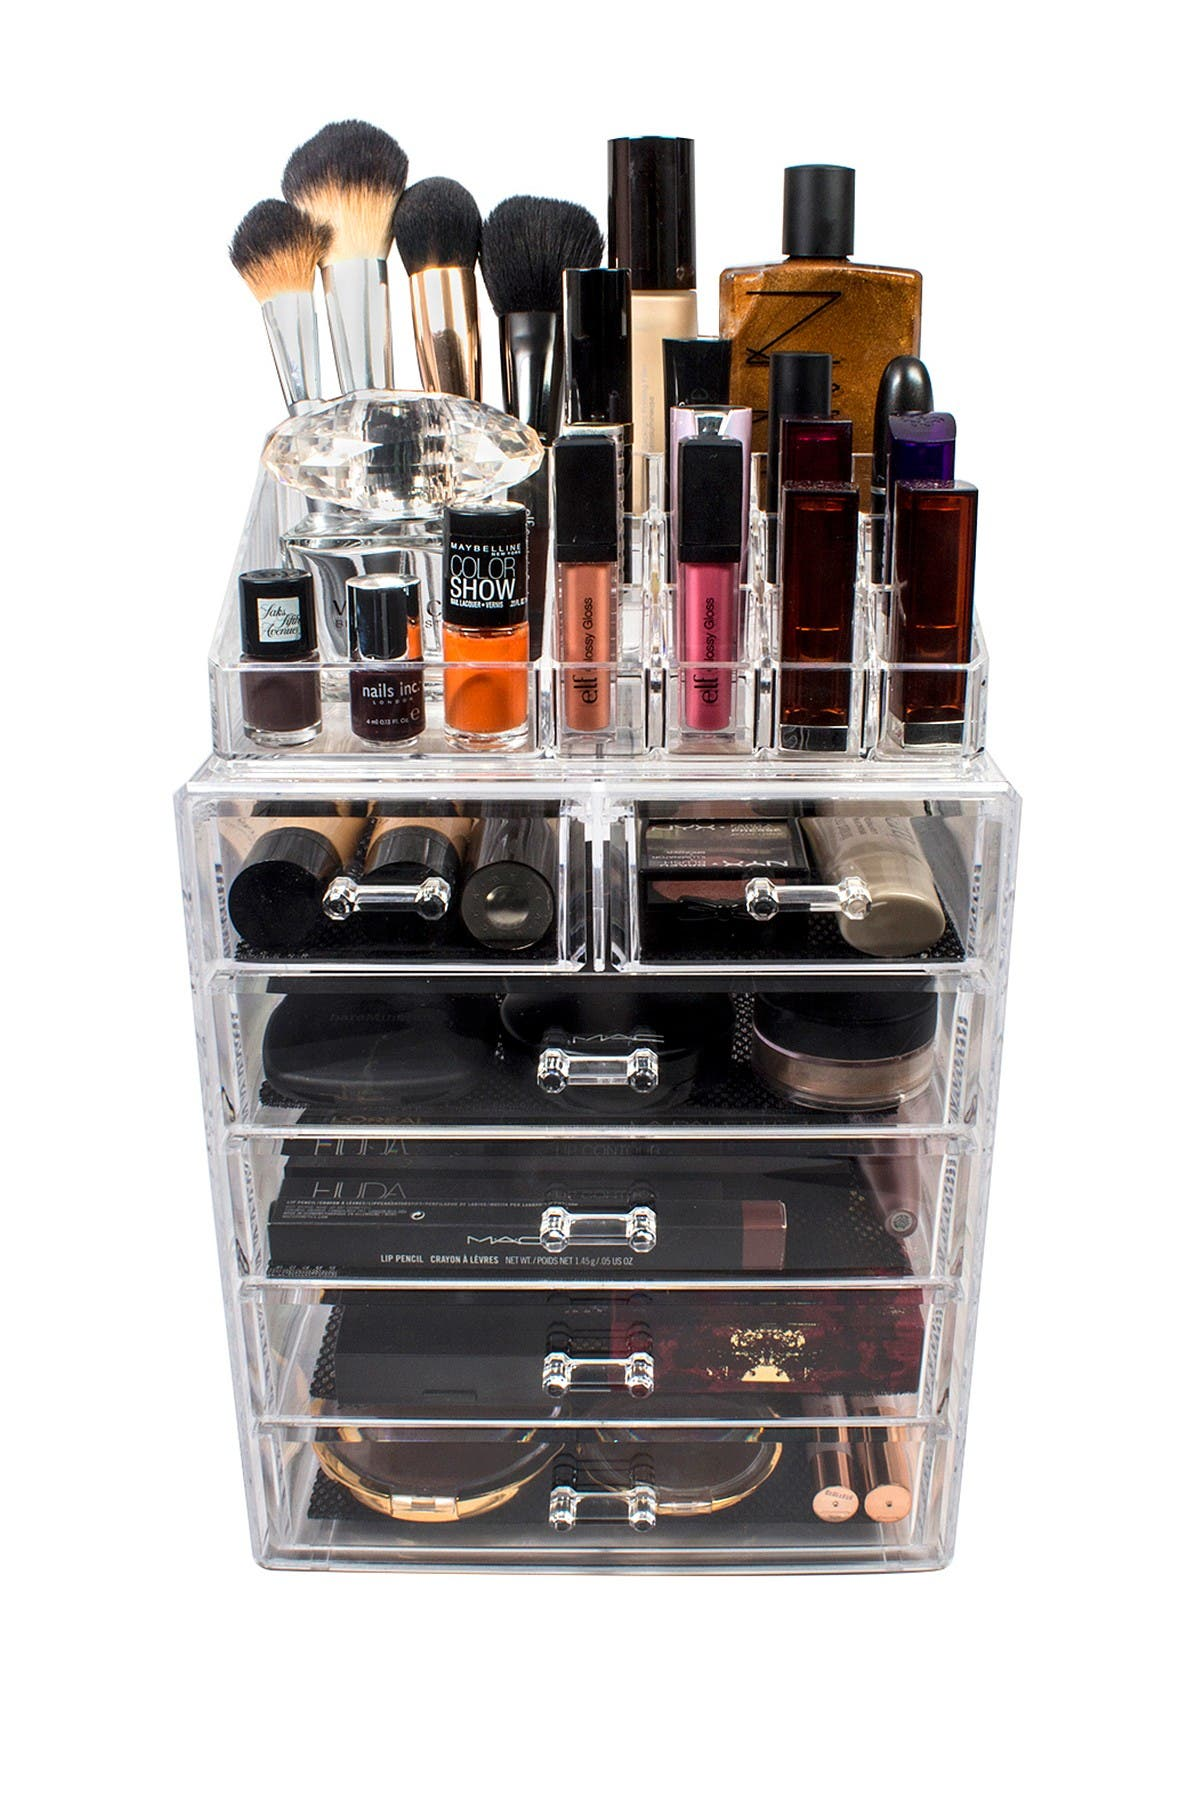 Image of Sorbus Acrylic 6 Drawer & Top Organizer Cosmetics Makeup & Jewelry Storage Case Display Set